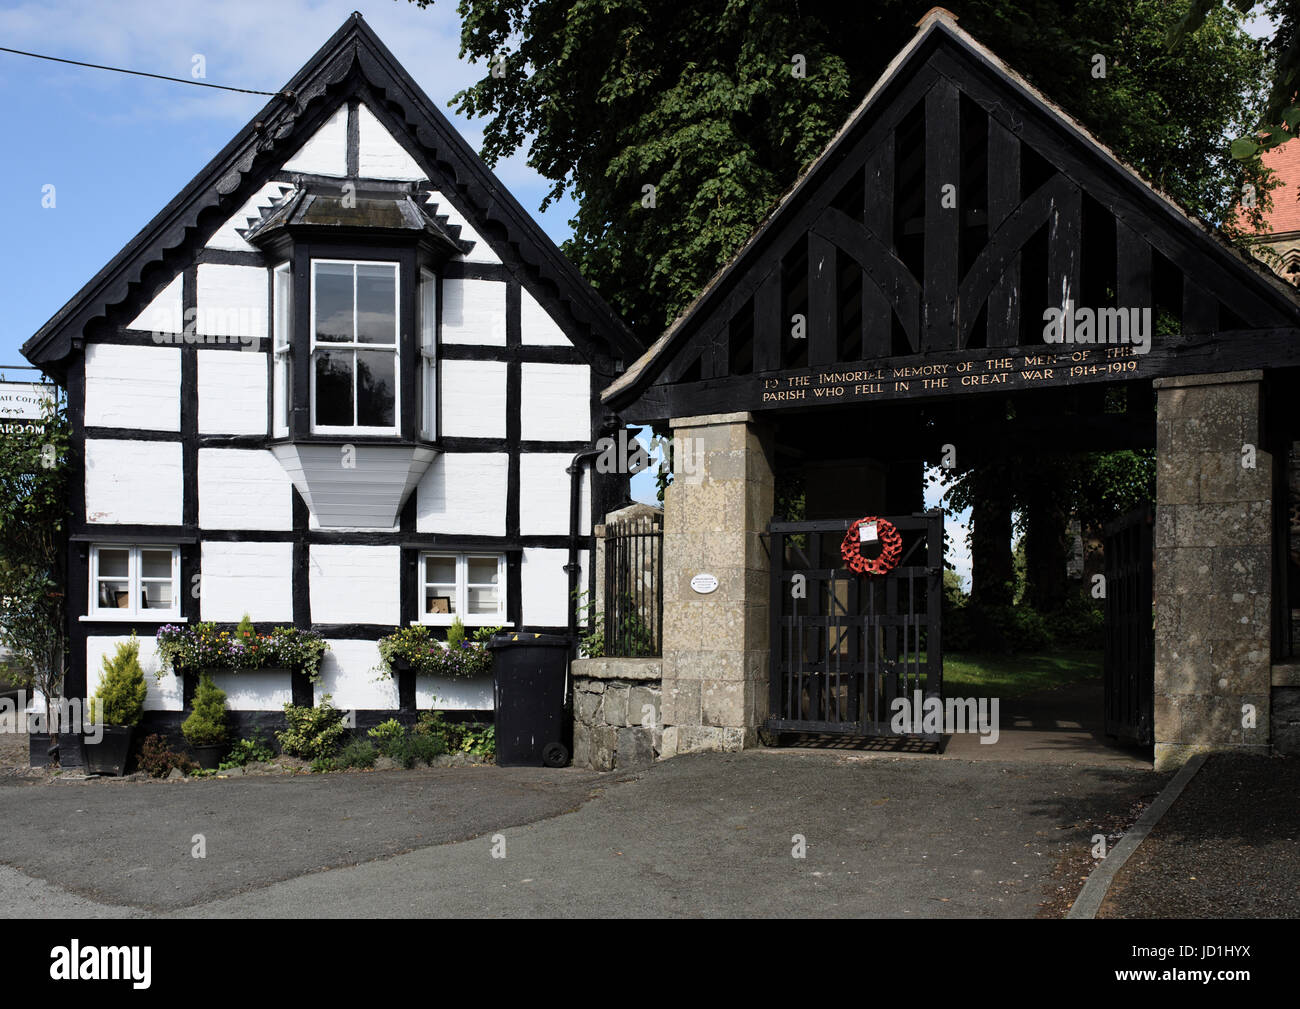 Berriew war memorial lychgate and black and white cottage - Stock Image